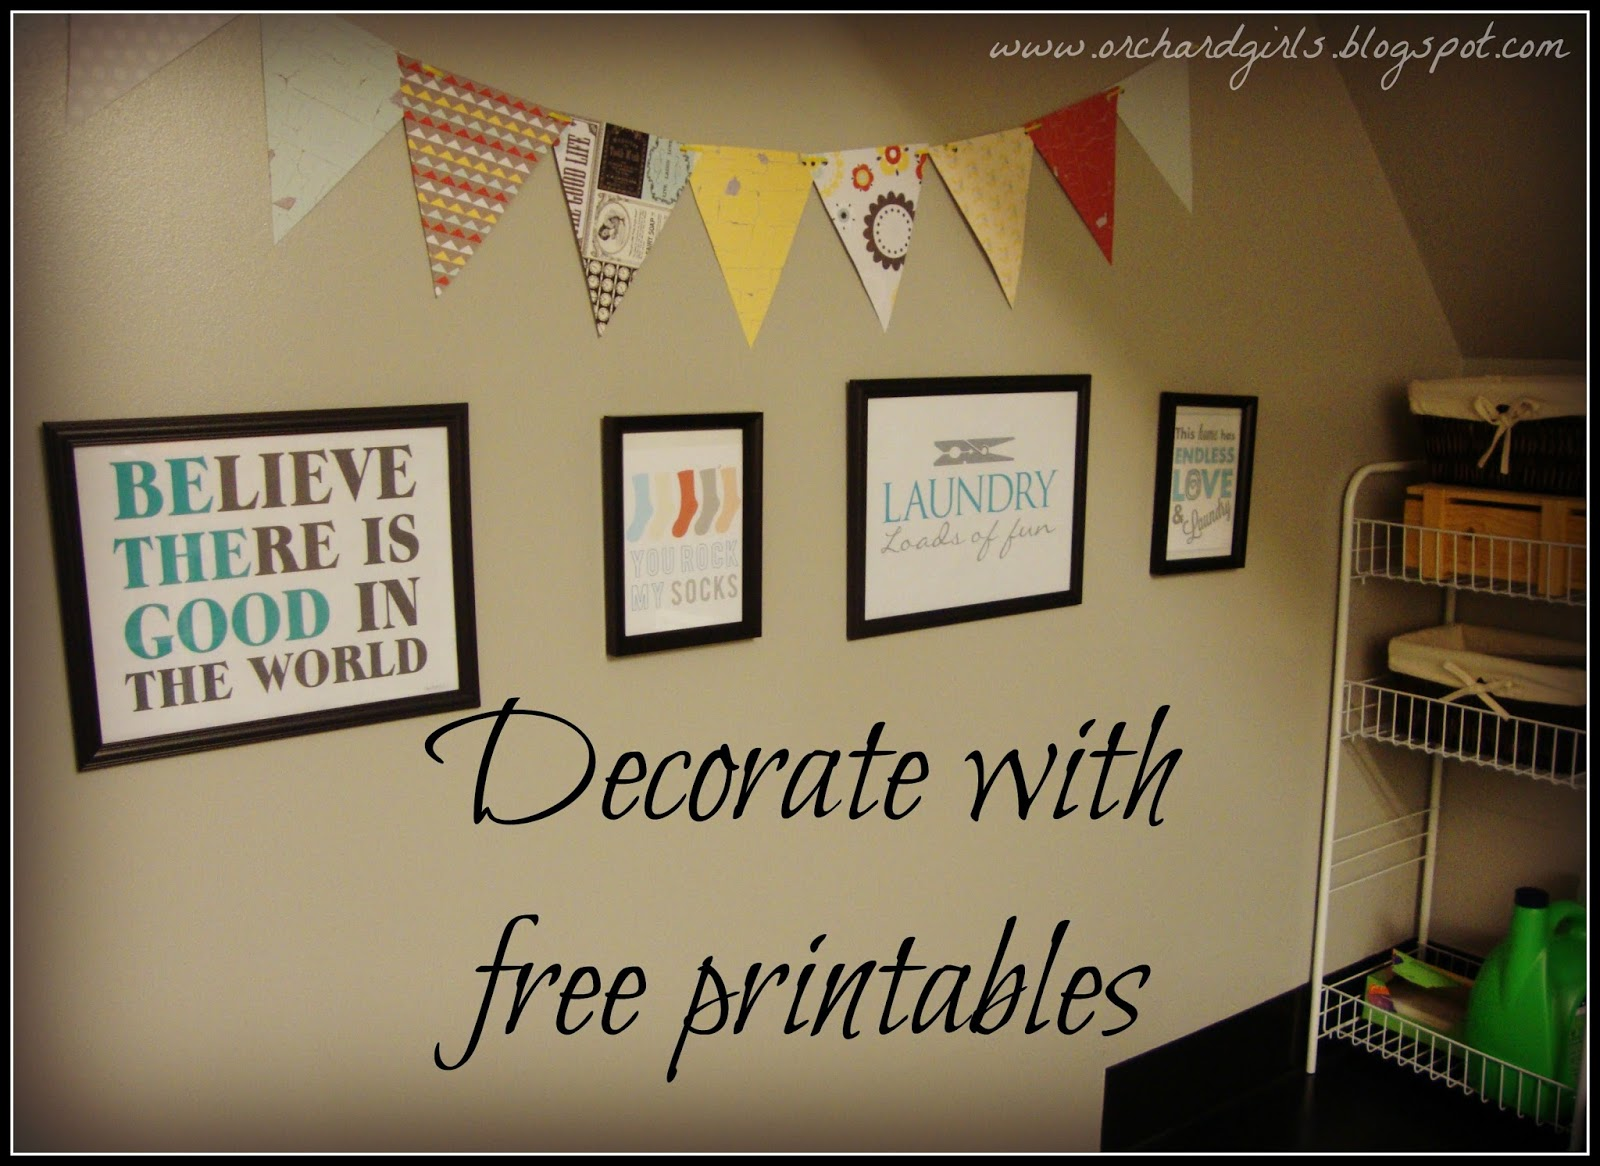 Orchard Girls Thrifty Thursday Decorating With Free